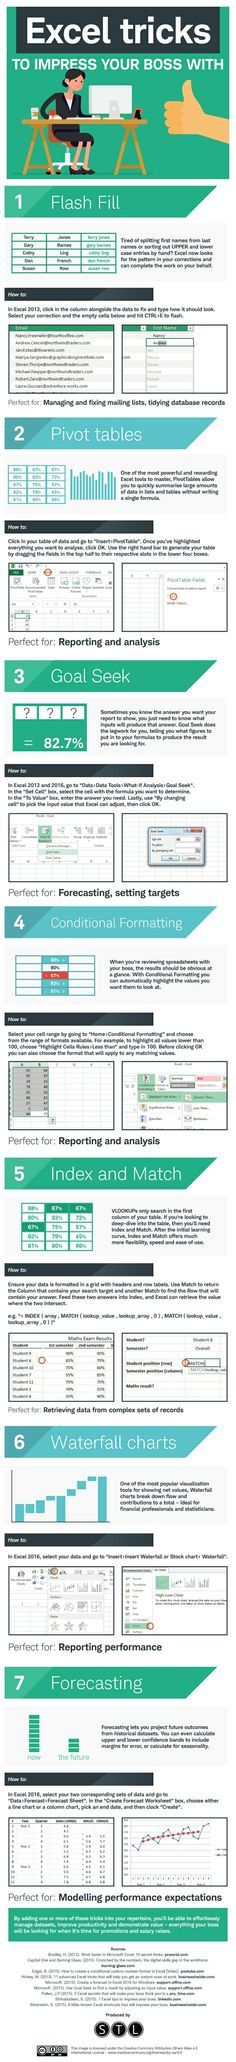 Handy Excel Tricks That'll Impress Your Boss [Infographic] These lesser-known excel tricks are sure to impress your boss!These lesser-known excel tricks are sure to impress your boss! Microsoft Excel, Microsoft Office, Microsoft Windows, Microsoft Hotmail, Computer Help, Computer Programming, Computer Tips, Lerntyp Test, Excel Tips